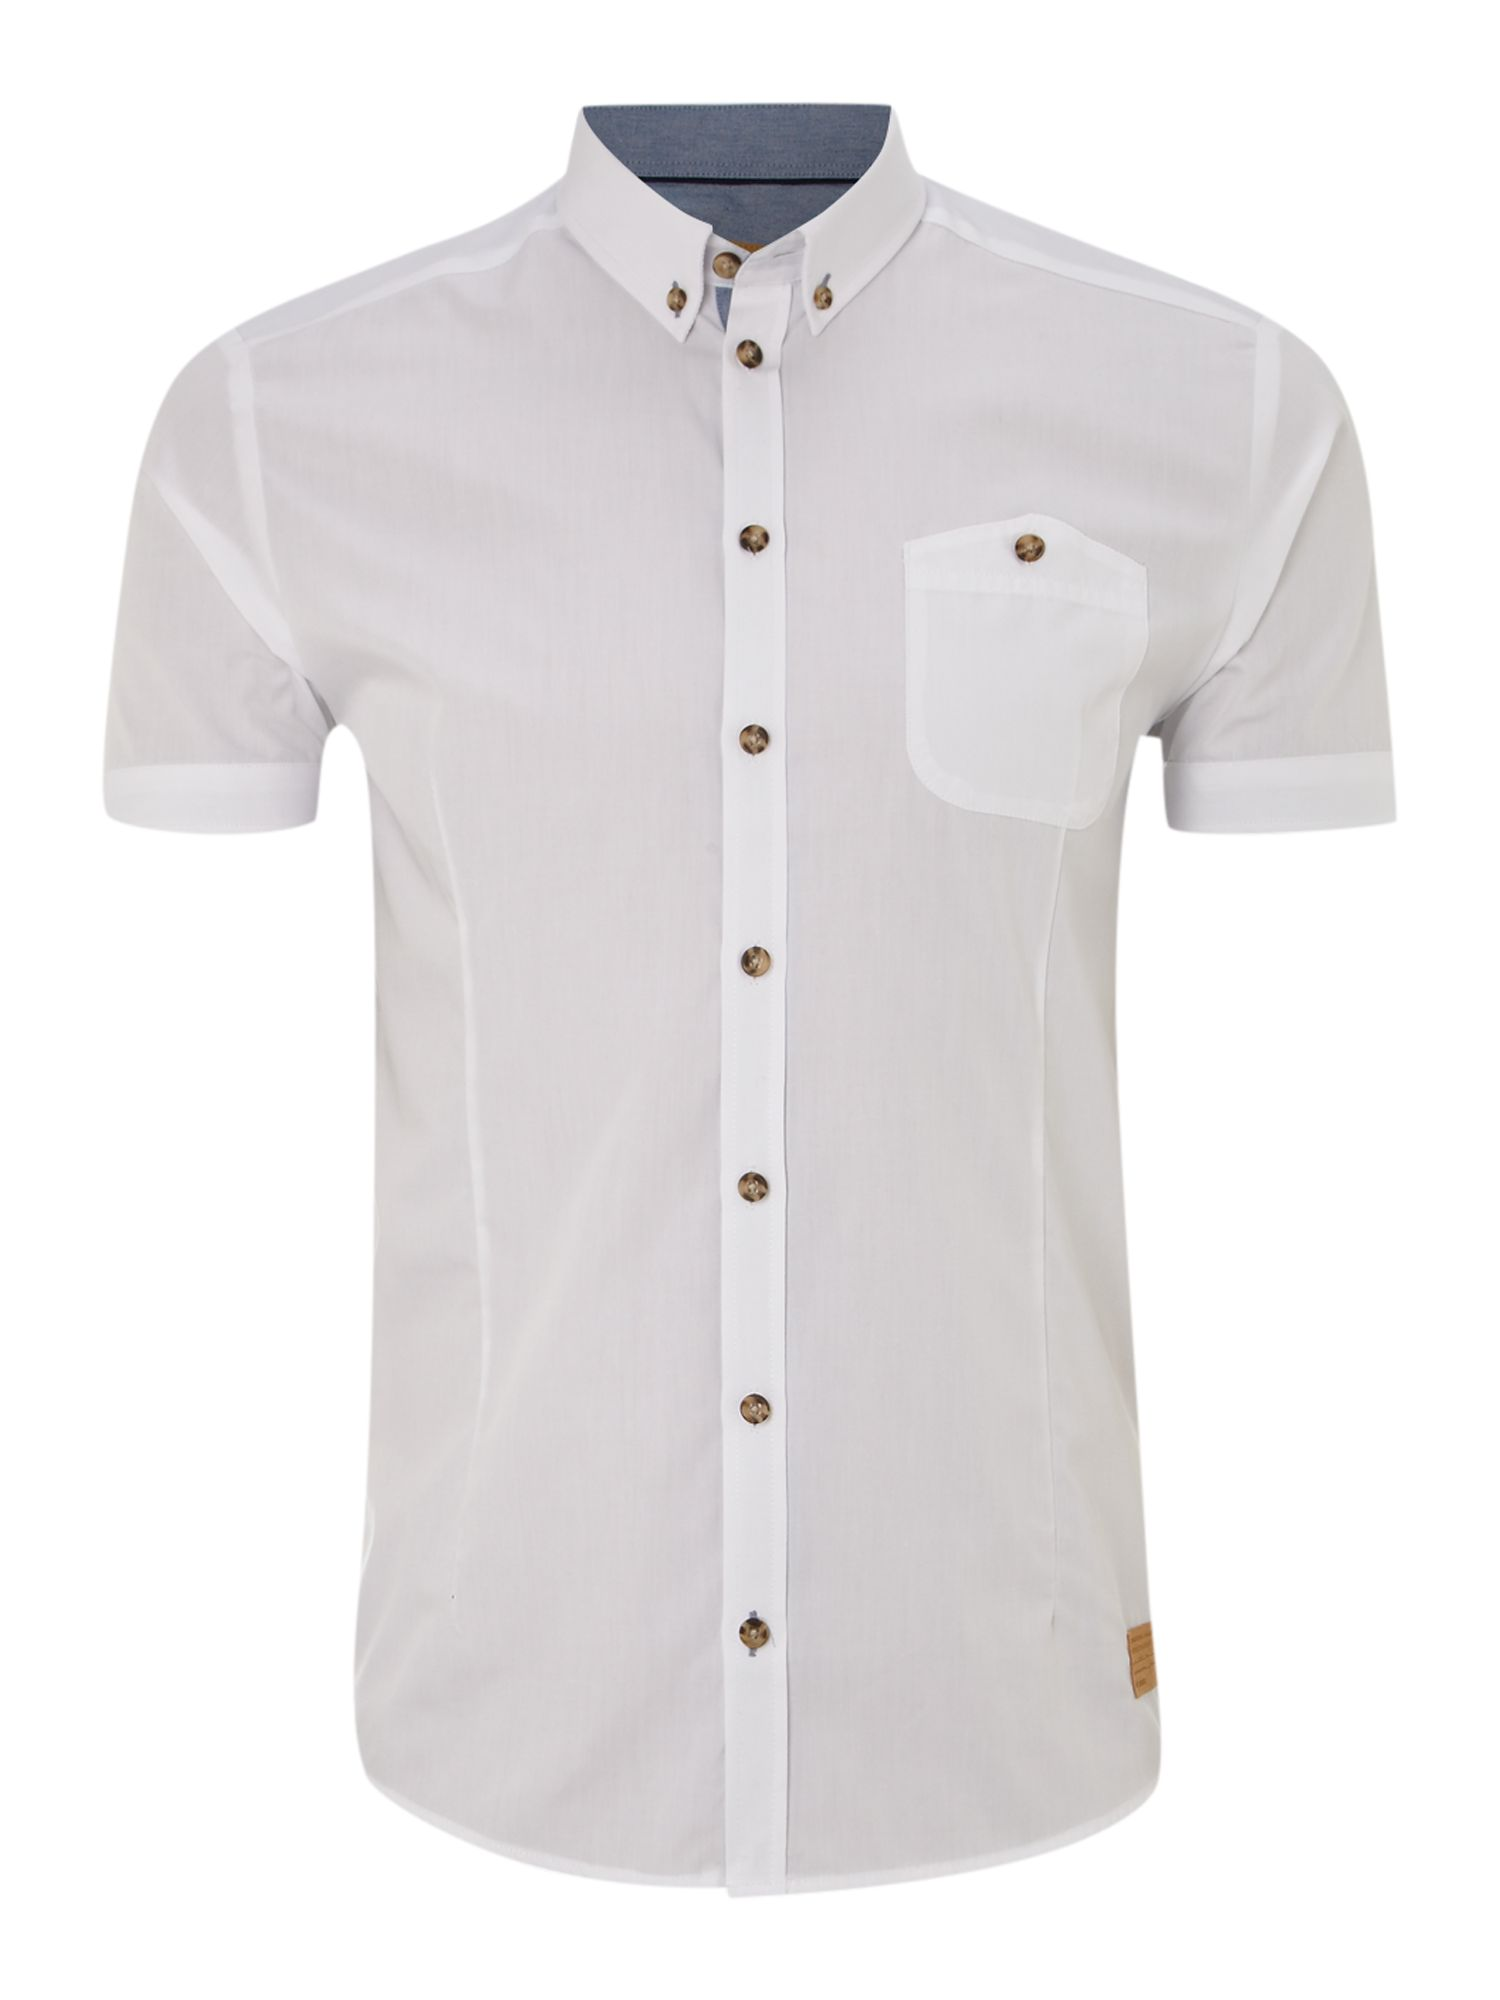 One pocket short sleeve shirt